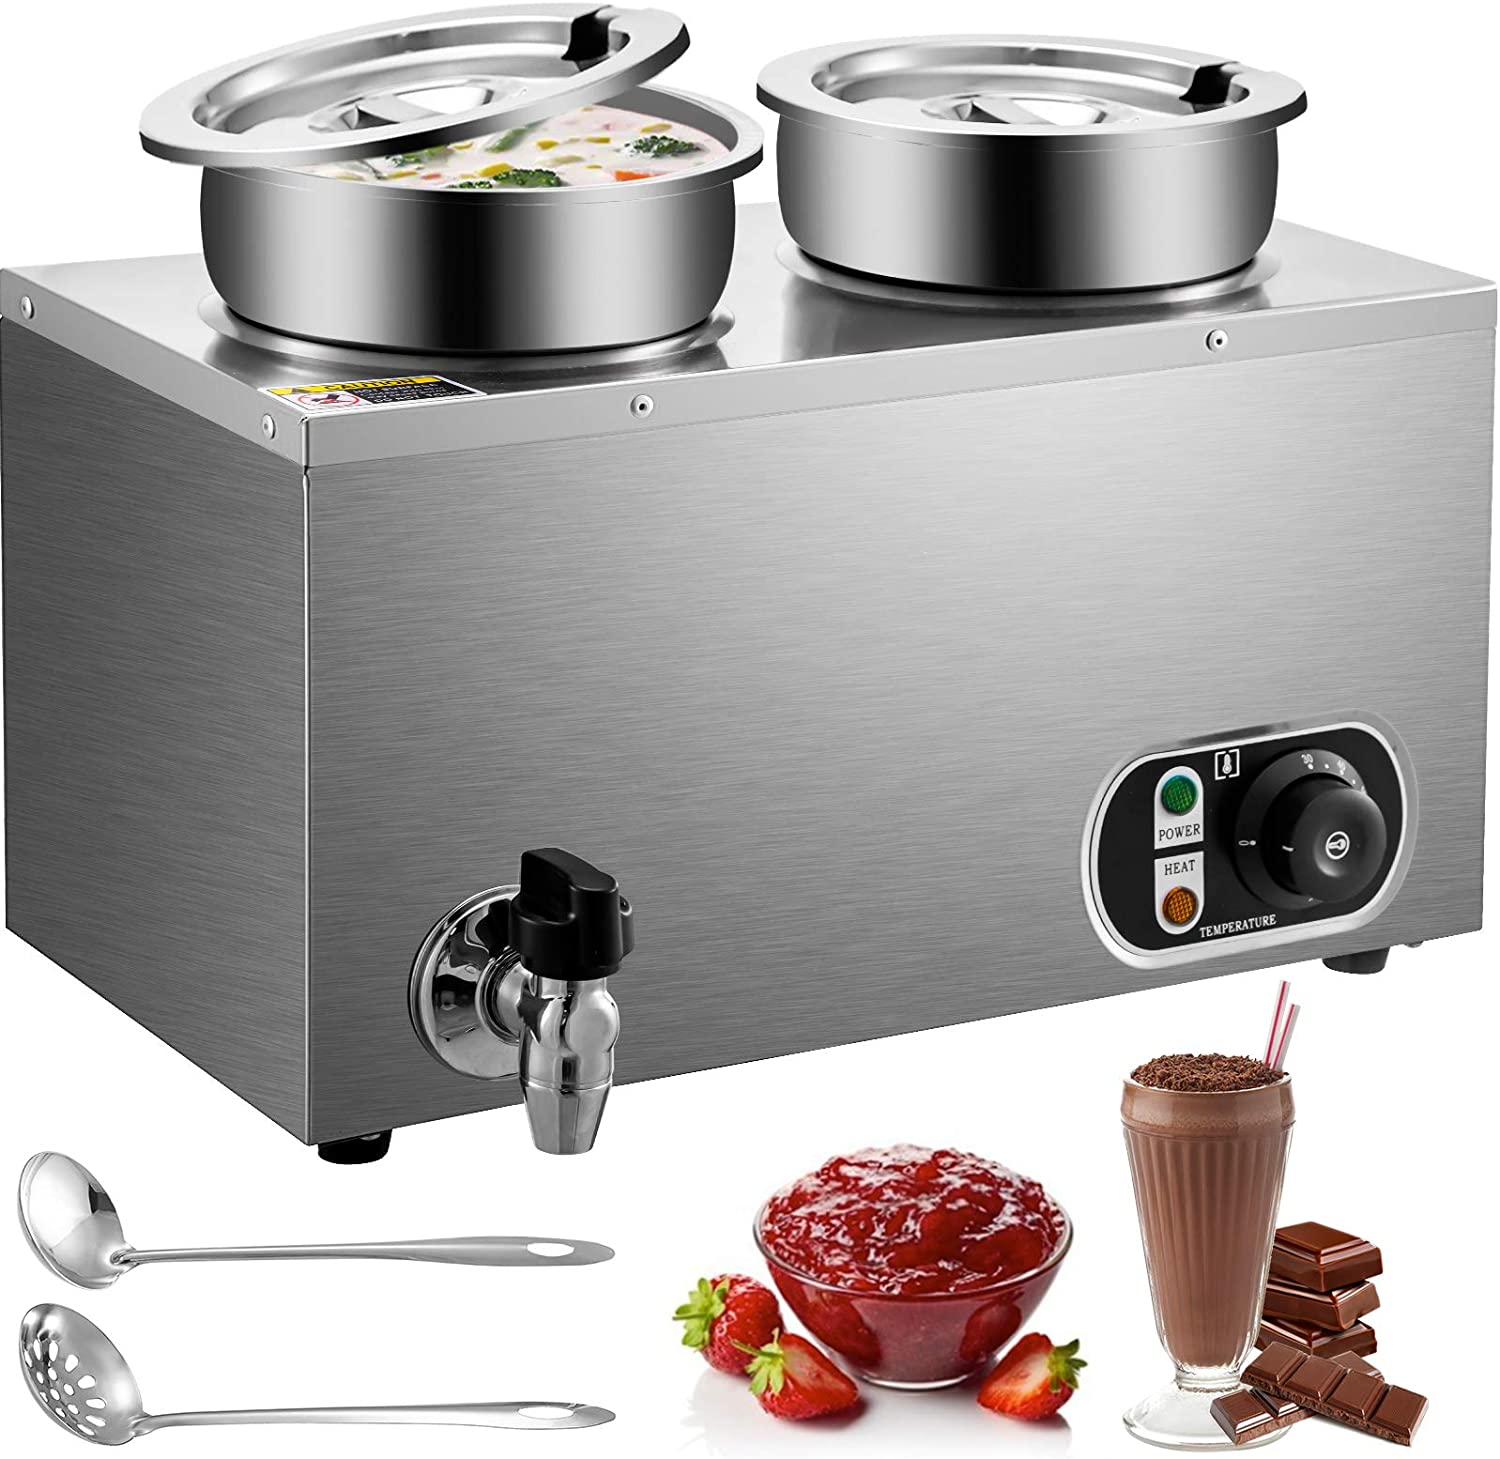 VEVOR 110V Commercial Food Warmer 8.4 Qt Capacity, 500W Electric Soup Warmer Adjustable Temp.32-185℉, Stainless Steel Countertop Soup Pot with Tap, Bain Marie Food Warmer for Cheese/Hot Dog/Rice